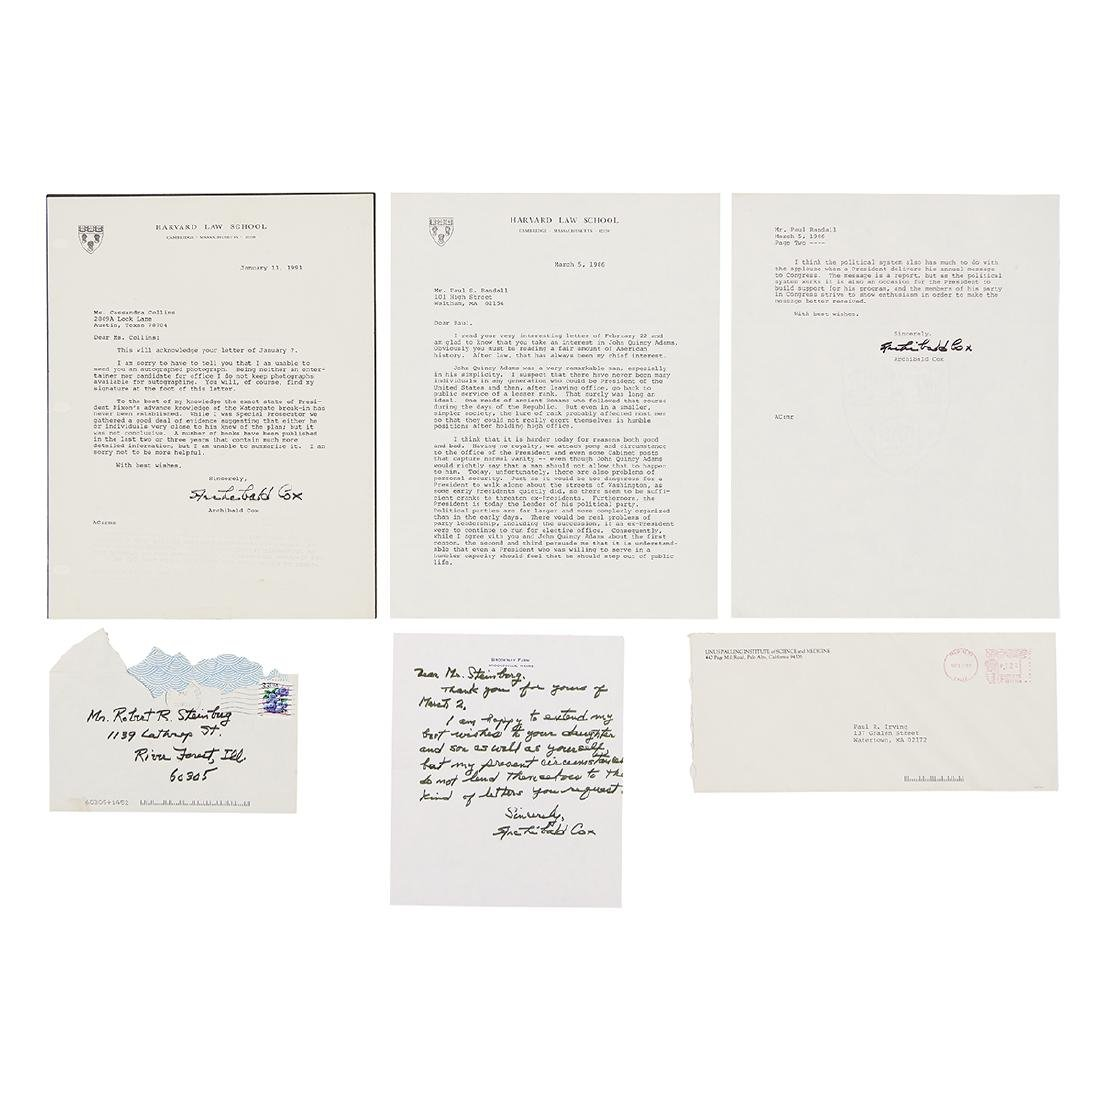 Archibald Cox / Watergate, Group of (5) Articles